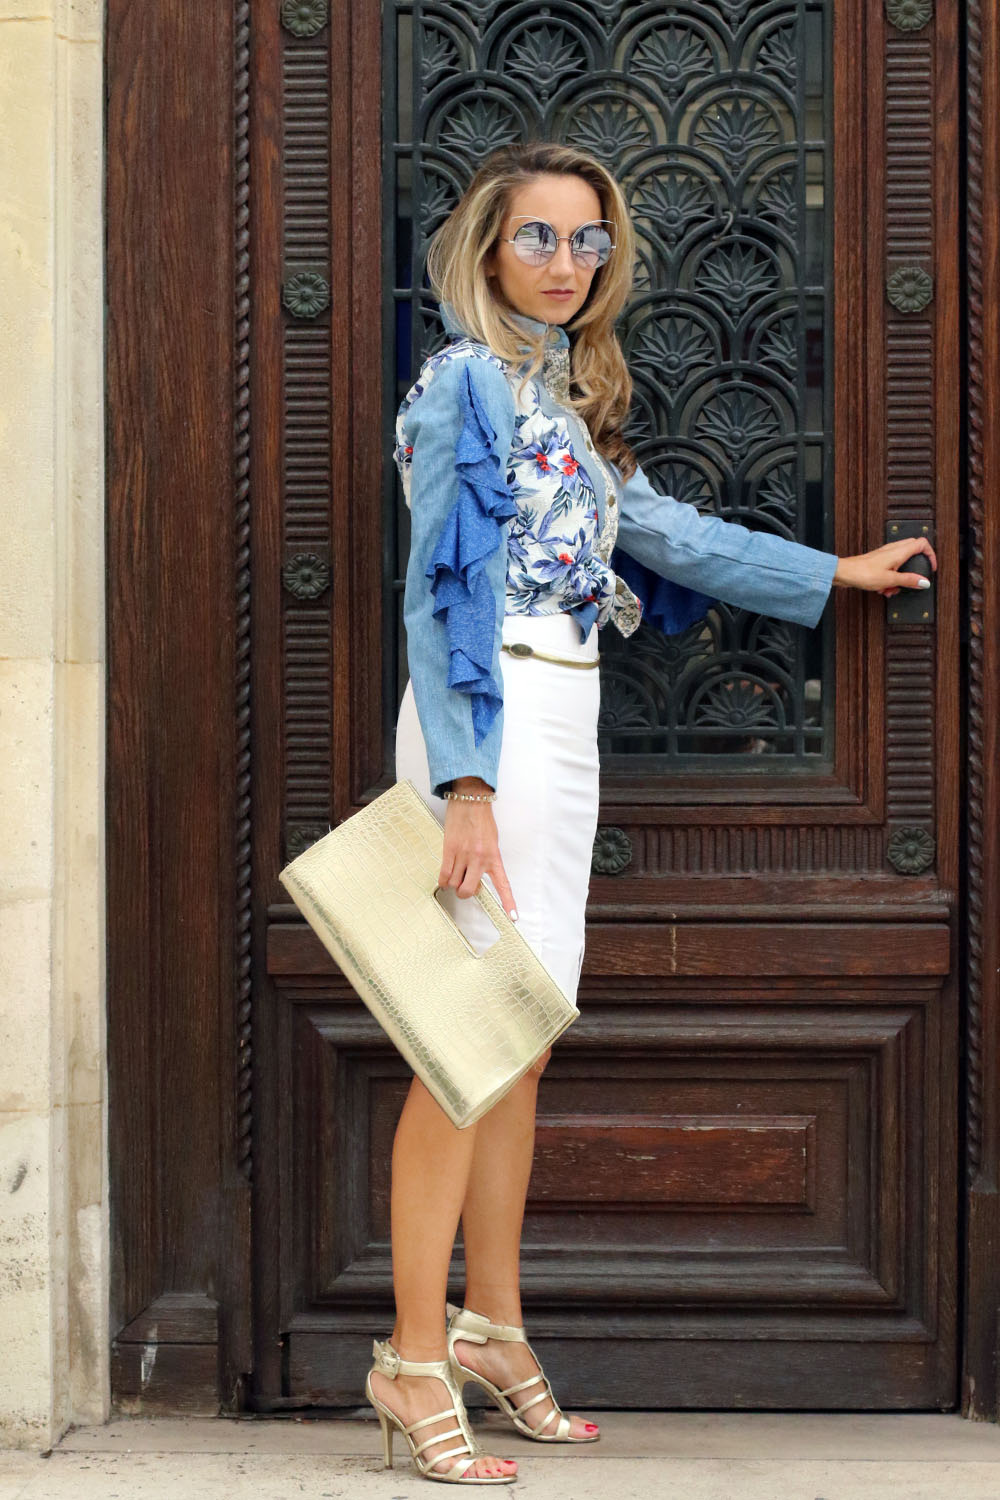 colurclub_fashion_blog_outfit_juan-carlos-cordillo-shirt-guess-shoes-gold-bag11